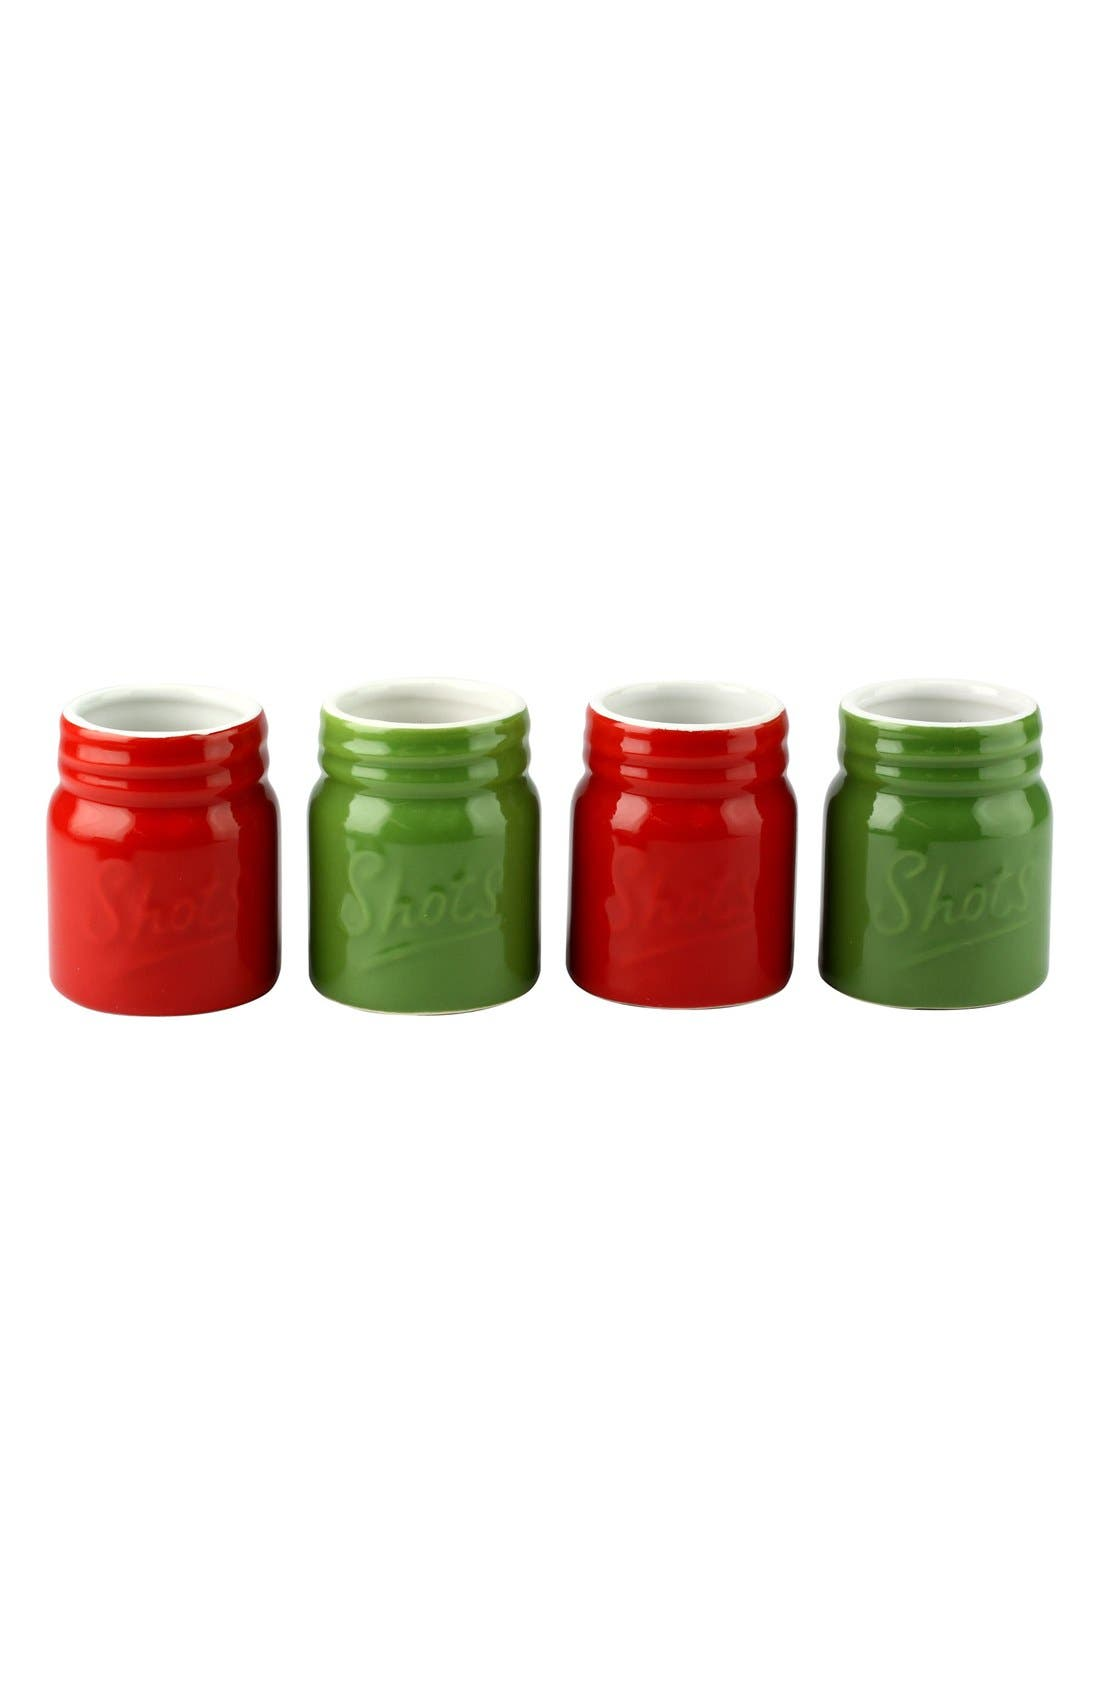 Main Image - Barbuzzo Ceramic Mason Jar Shot Cups (Set of 4)